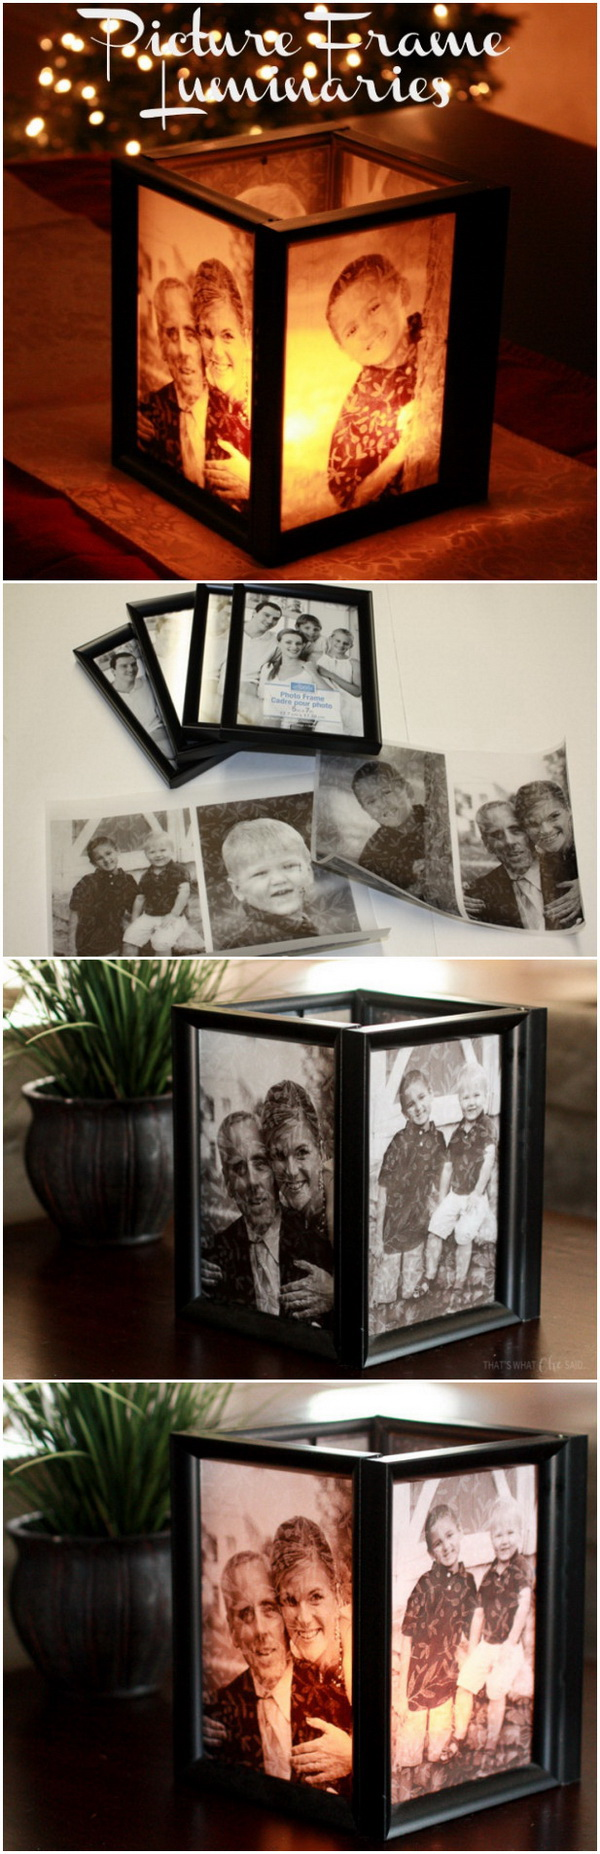 Picture Frame Luminaries. These Picture Frame Luminaries make the wonderful and meaningful handmade gifts, keepsake for holiday!